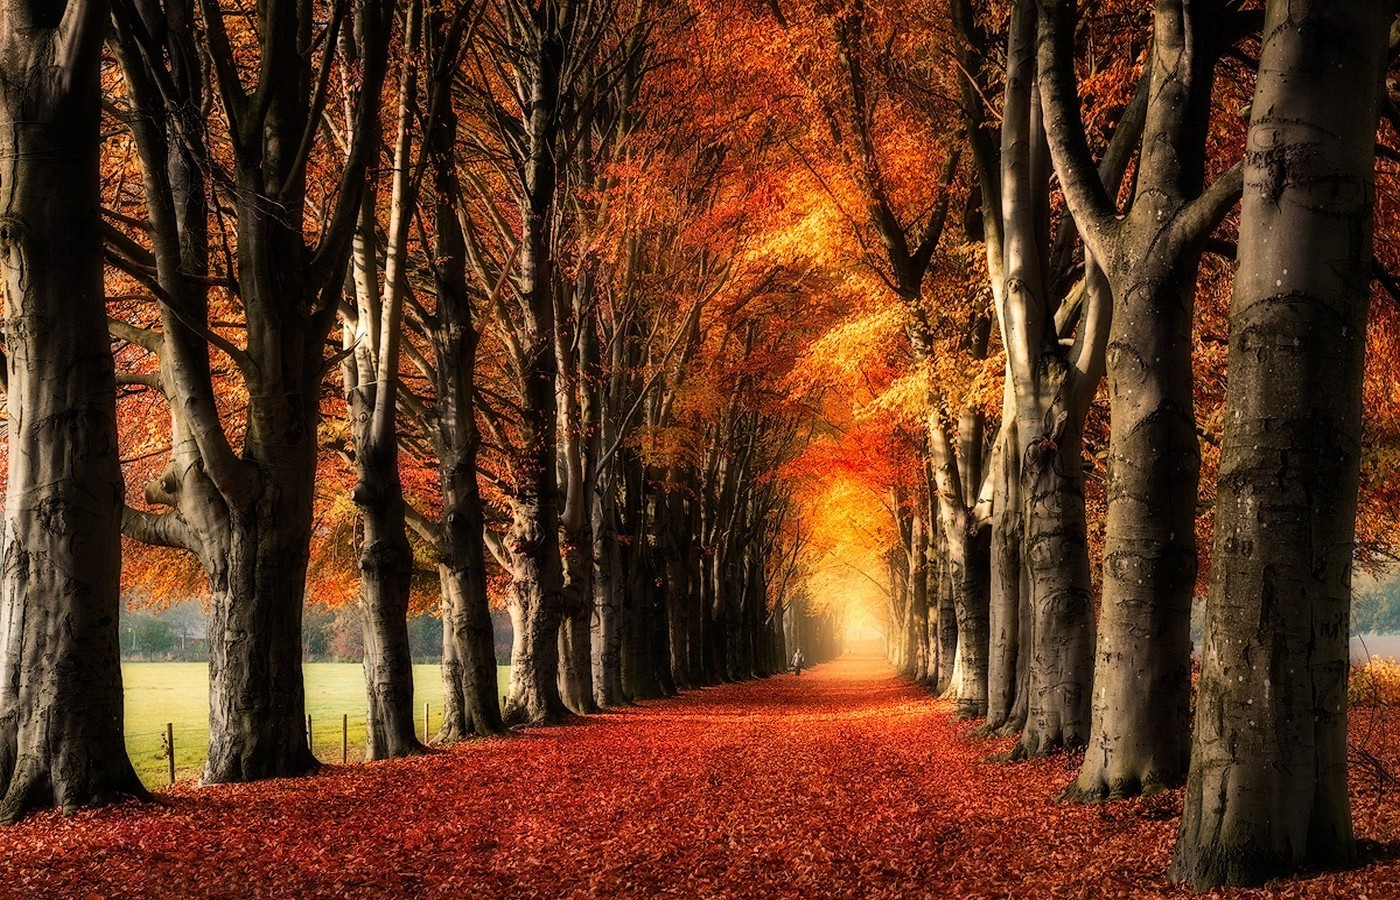 Fall Woodsy Pc Wallpaper Nature Landscape Trees Fall Yellow Red Leaves Path